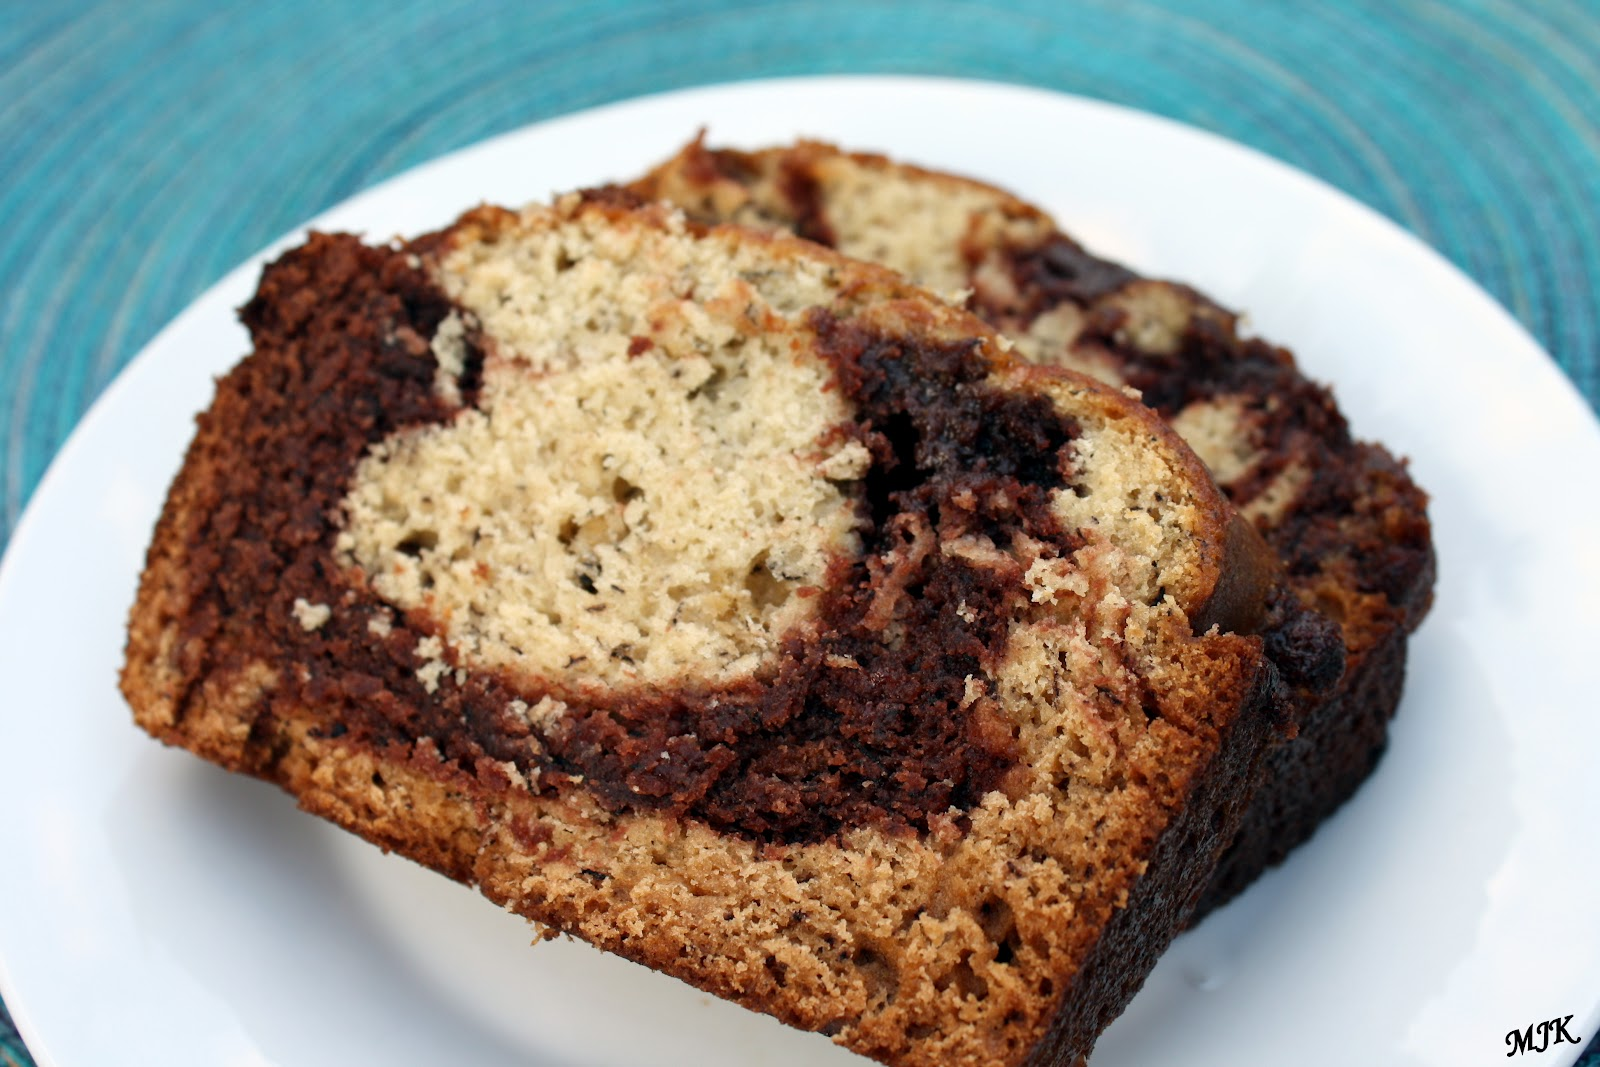 this bread to one of my favorite banana bread recipes